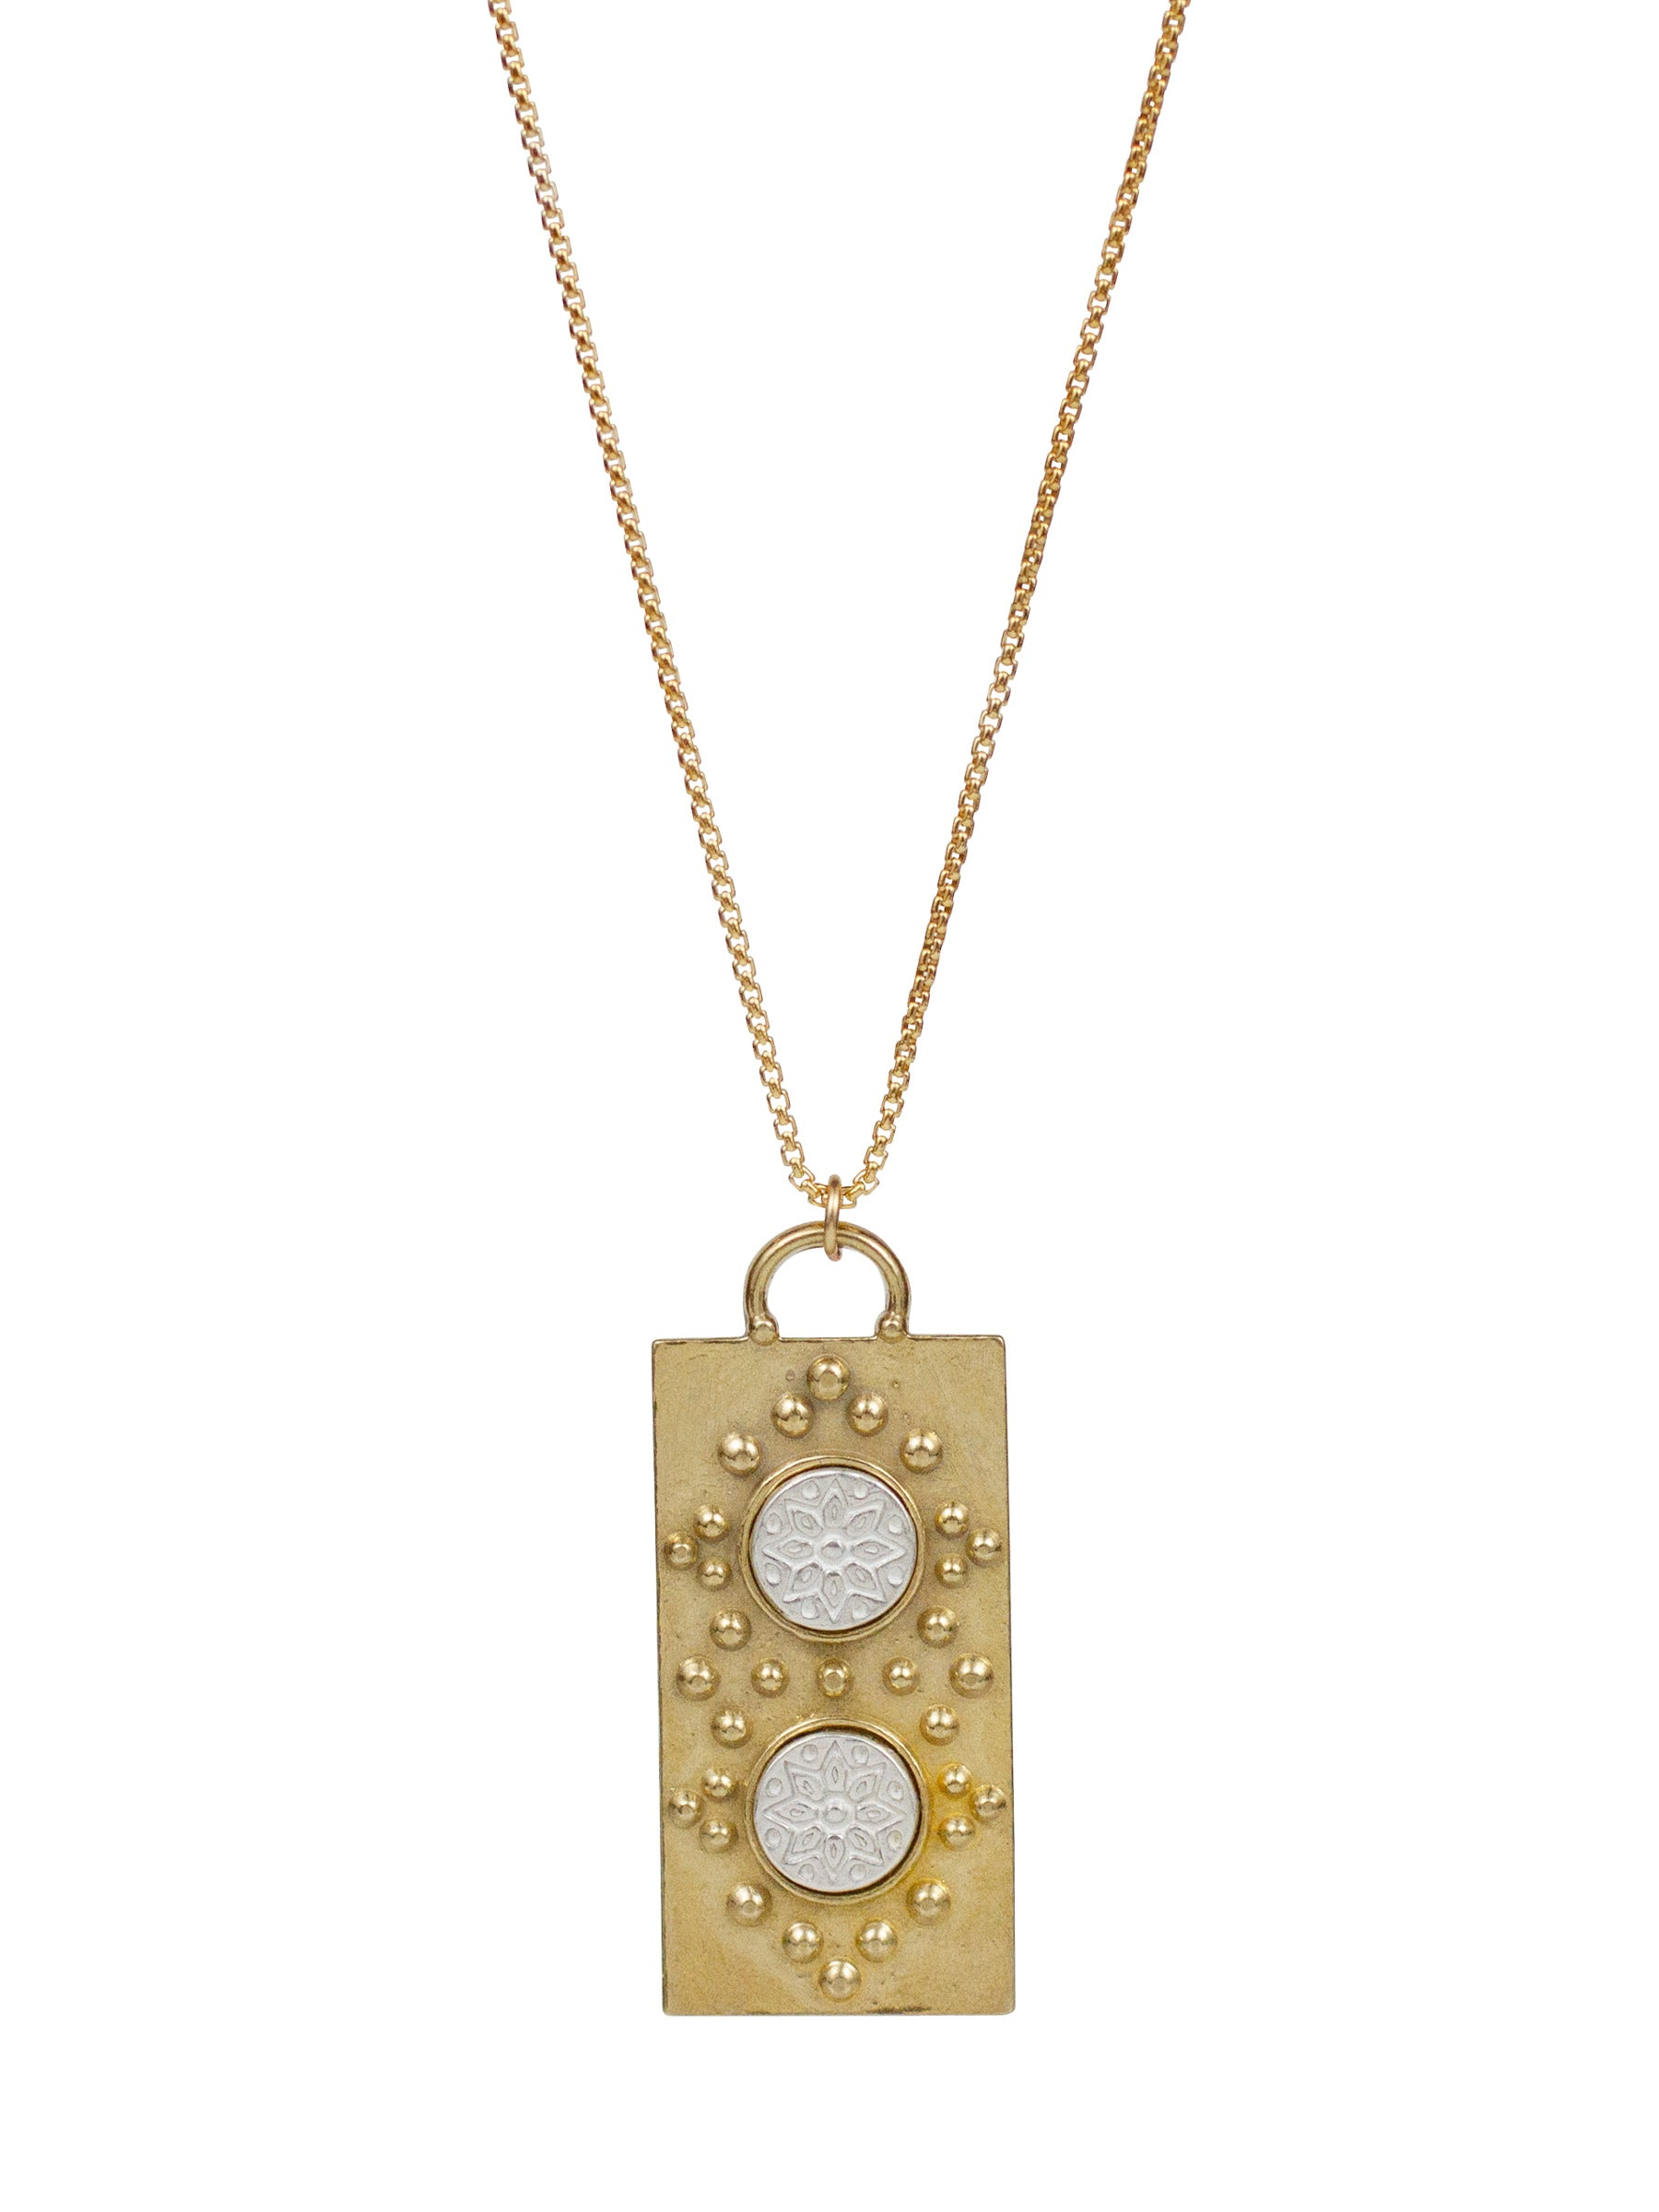 "Mantra Necklace ""manifest your destiny"""